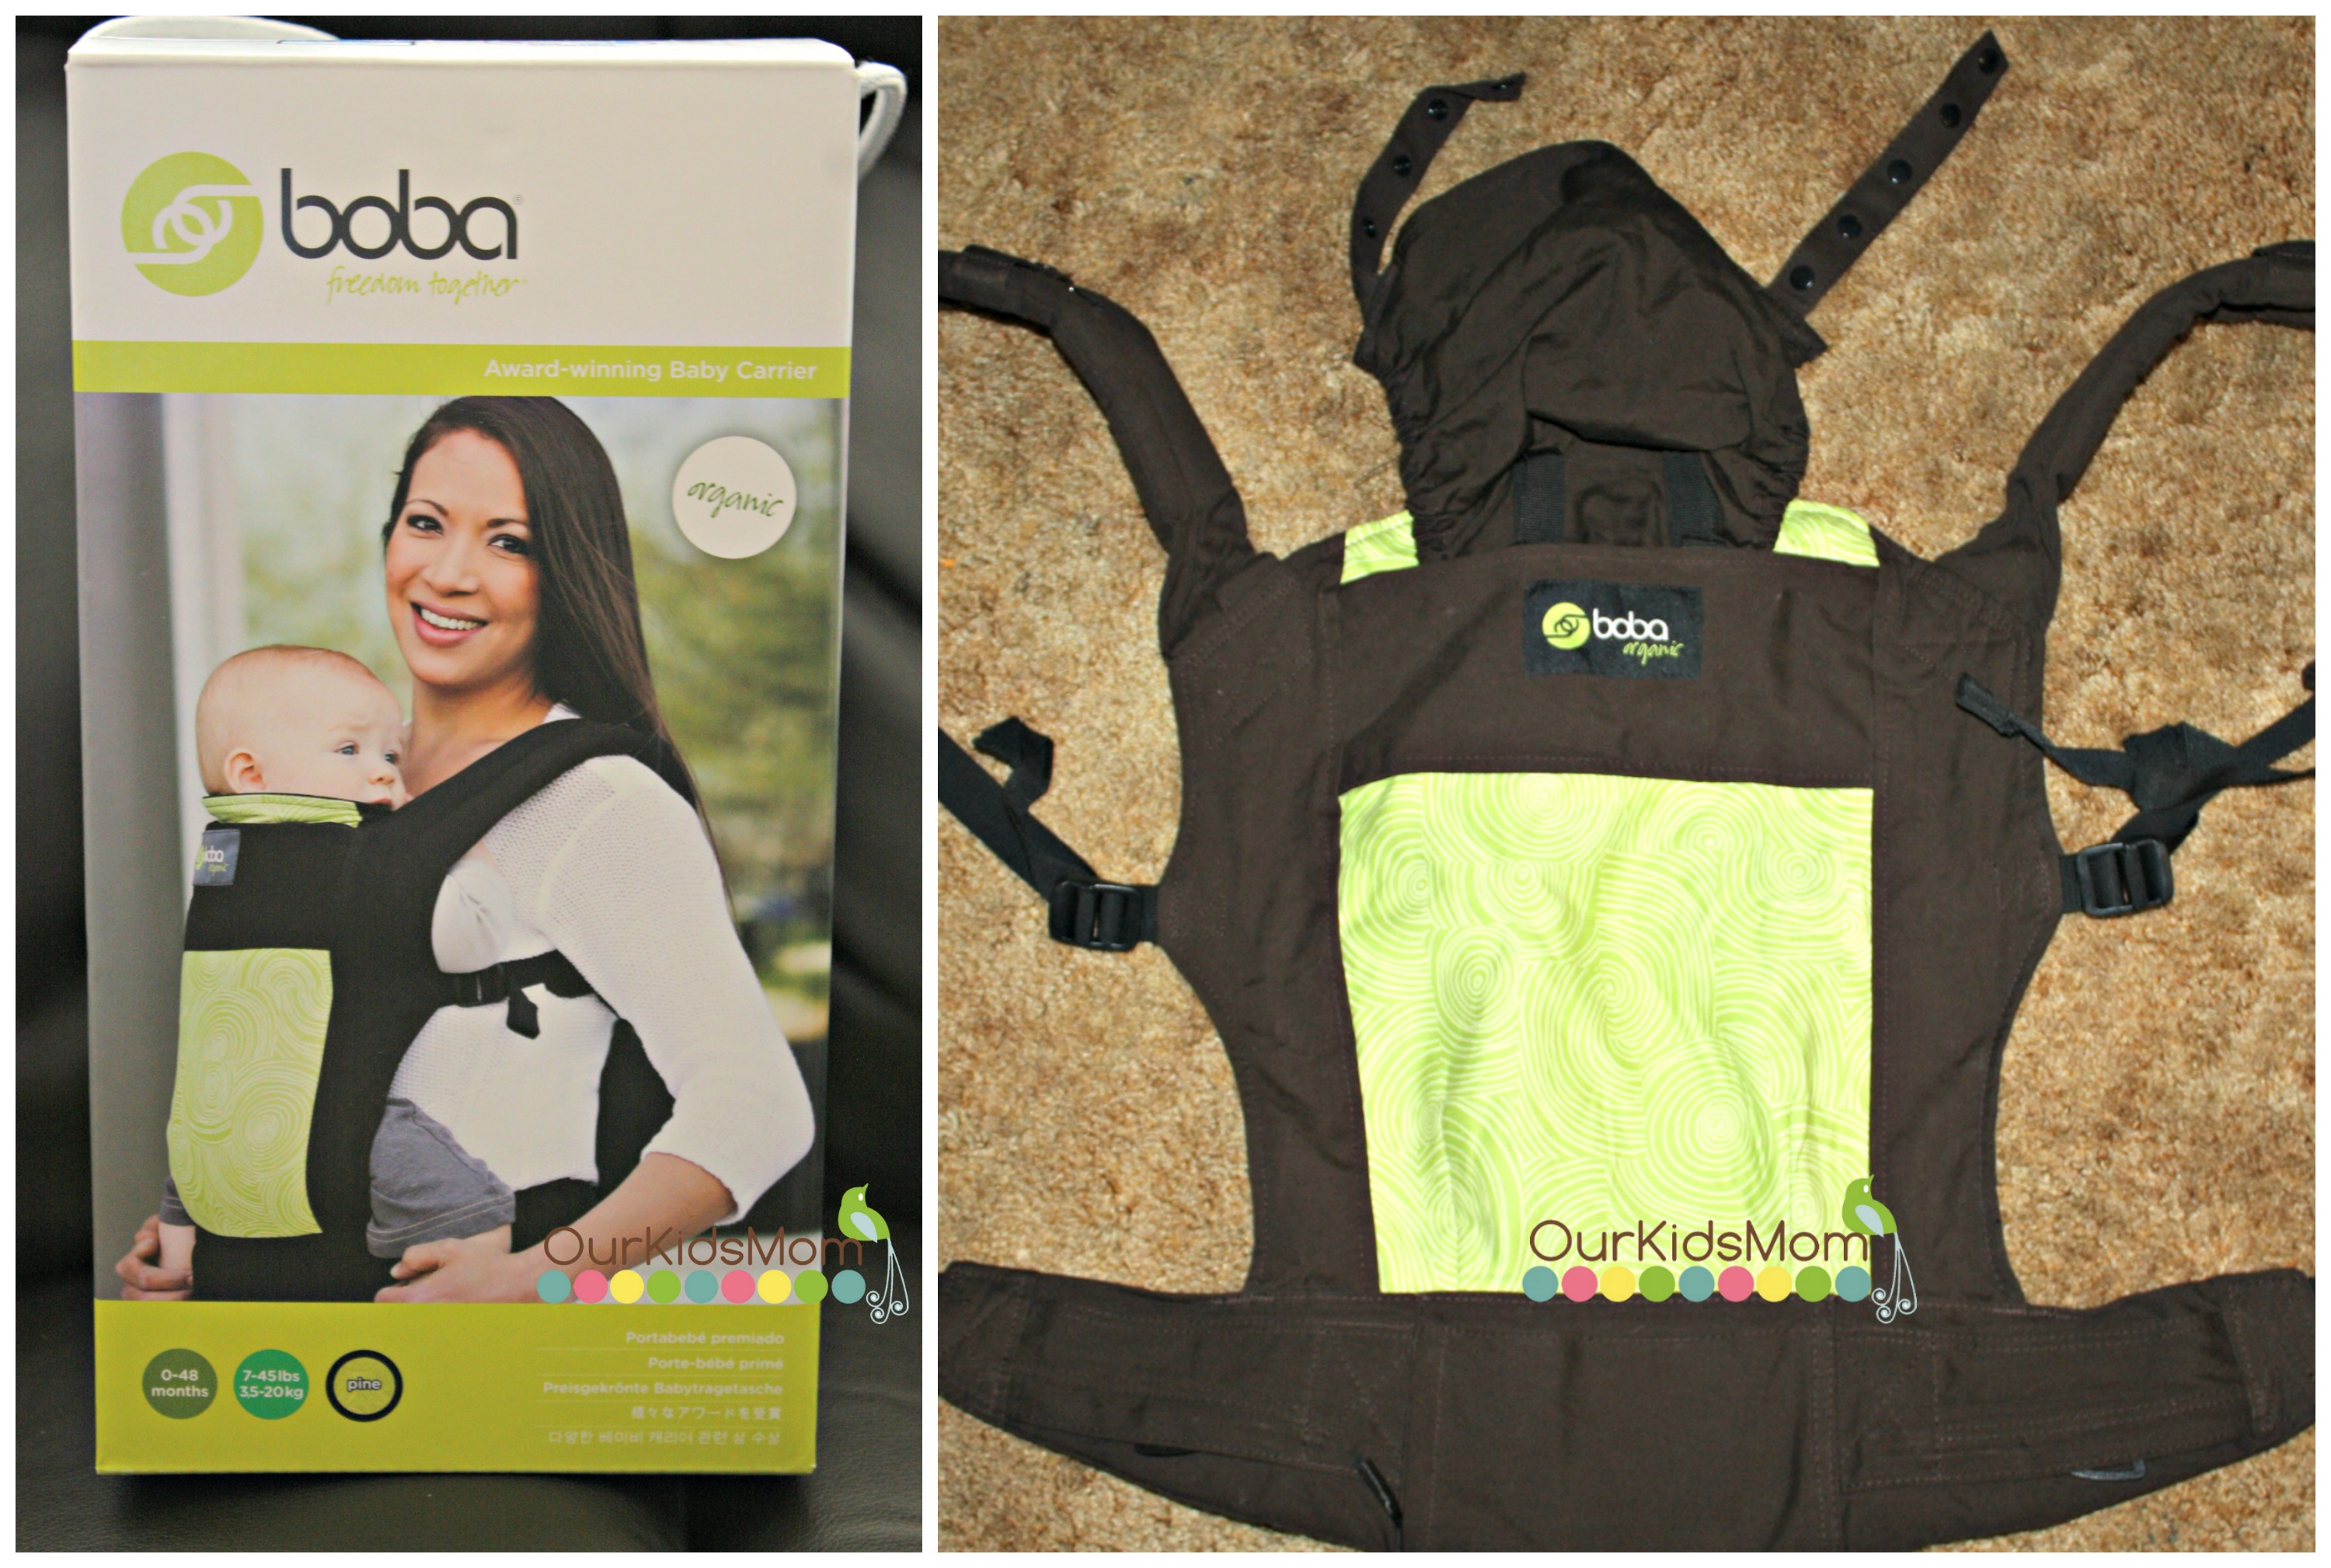 Holiday Gift Guide 2013 Boba Organic Baby Carrier